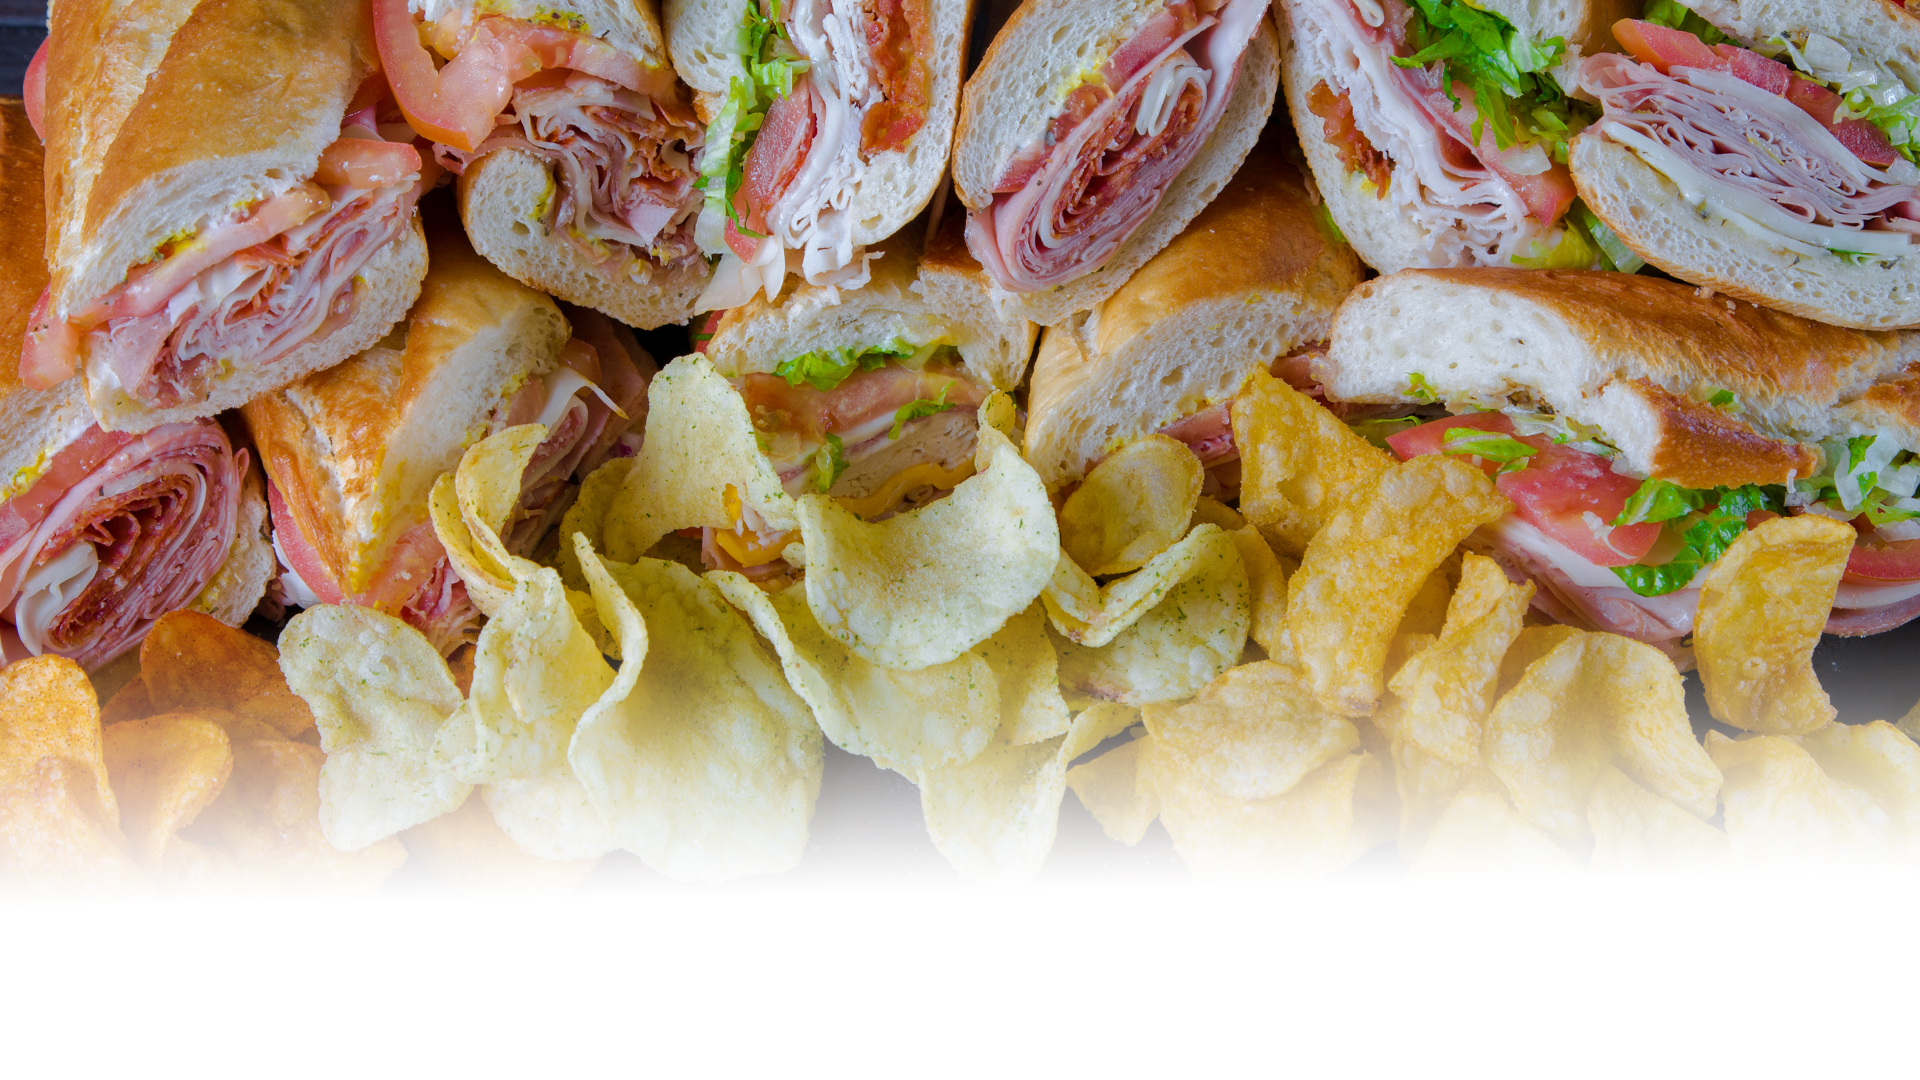 Picture of Various Sandwiches.